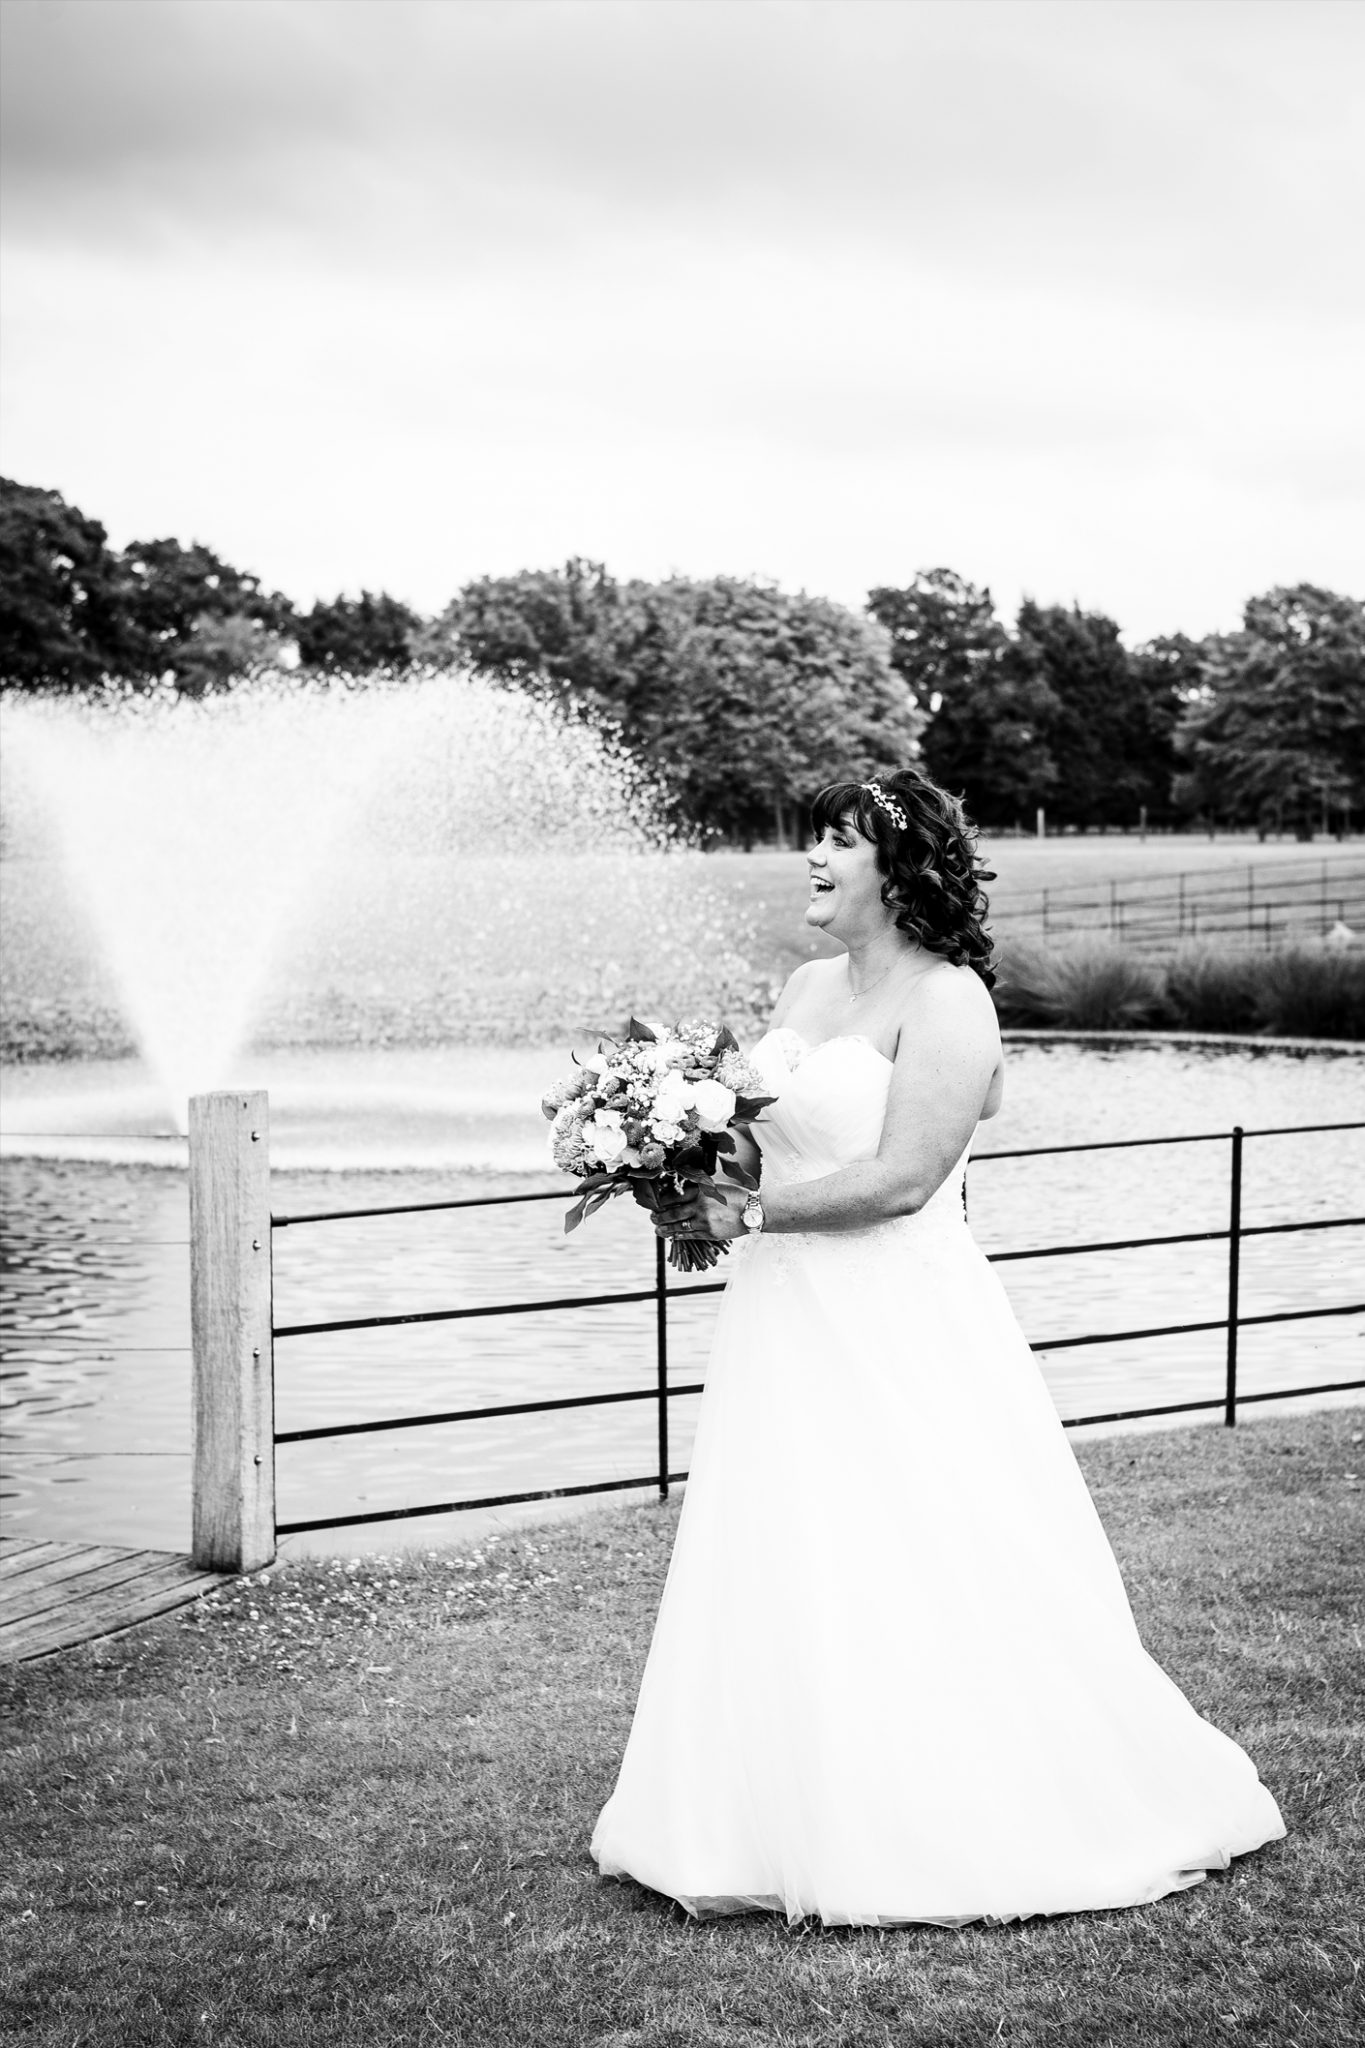 wedding-photography-of-the-bride-merrydale-manor-knutsford-cheshire